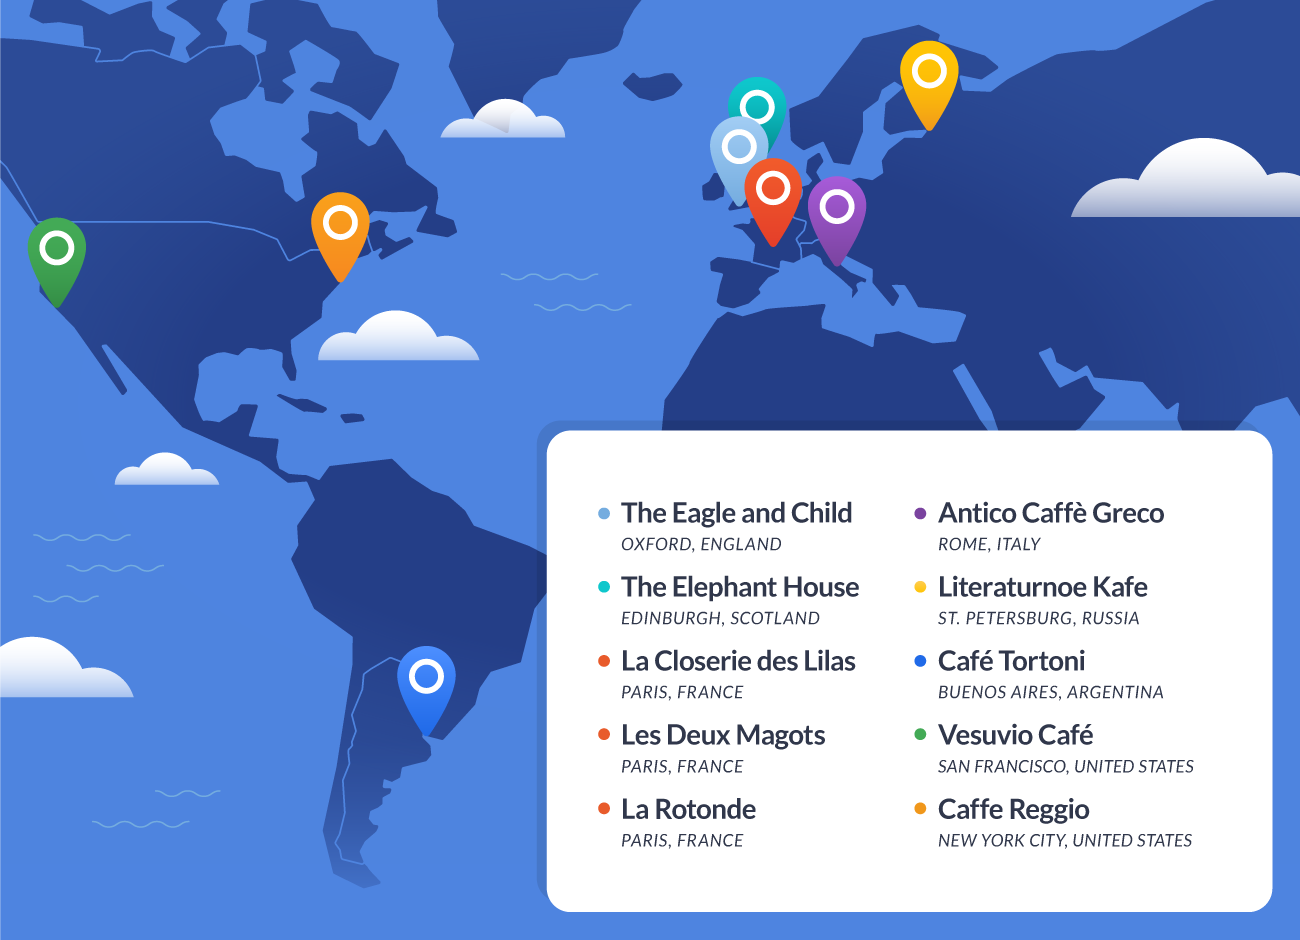 illustrated map of ten iconic literary cafes